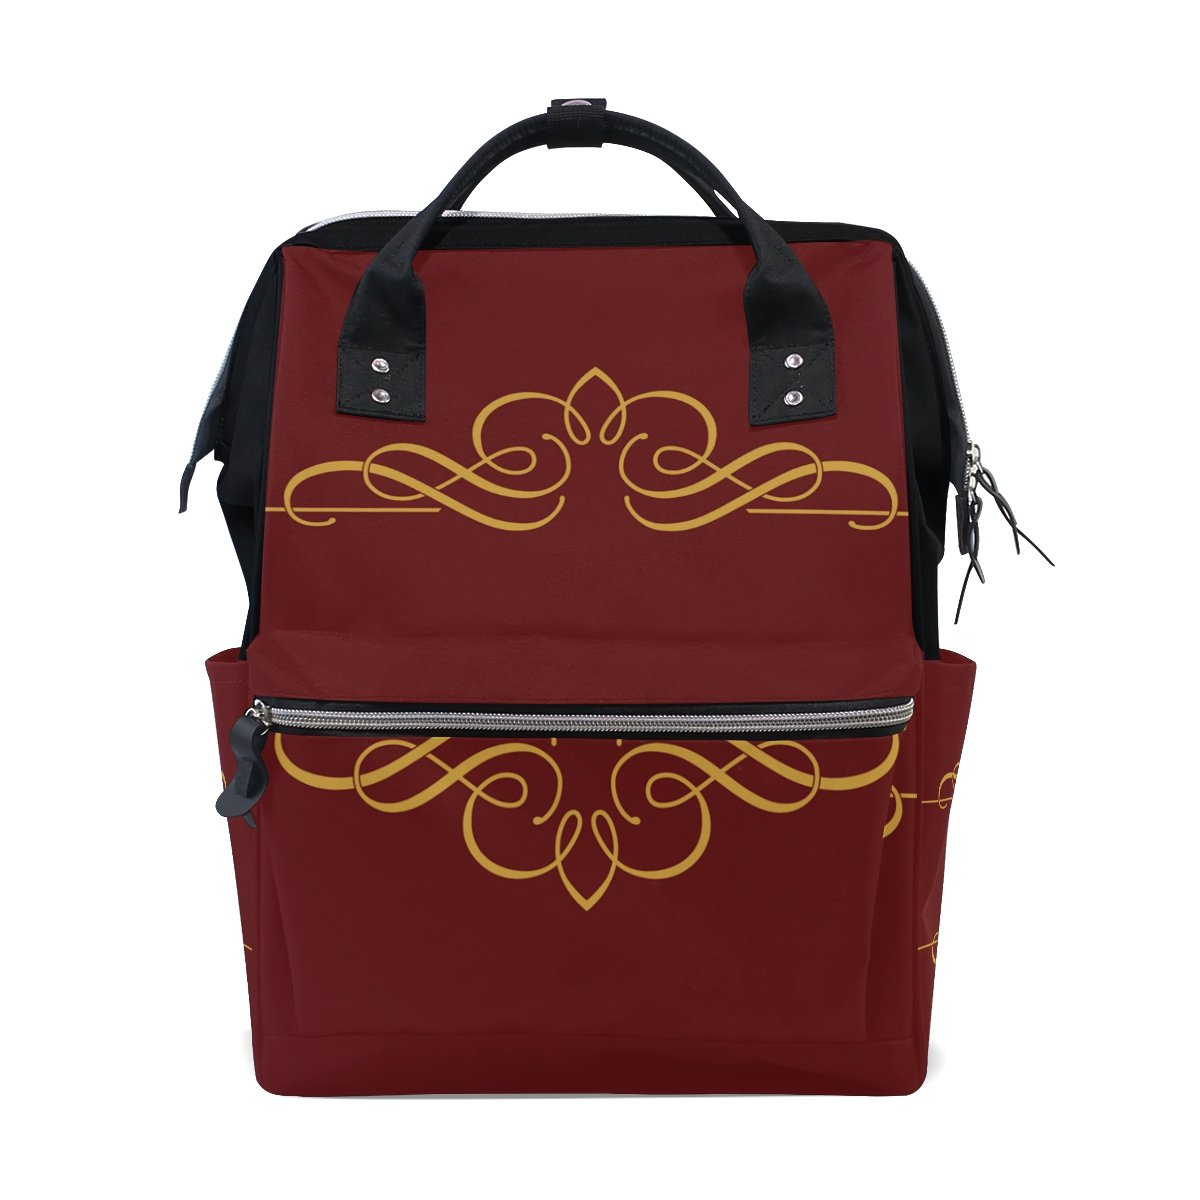 Backpack School Bag Valentine Day Wedding Canvas Travel Doctor Style Daypack